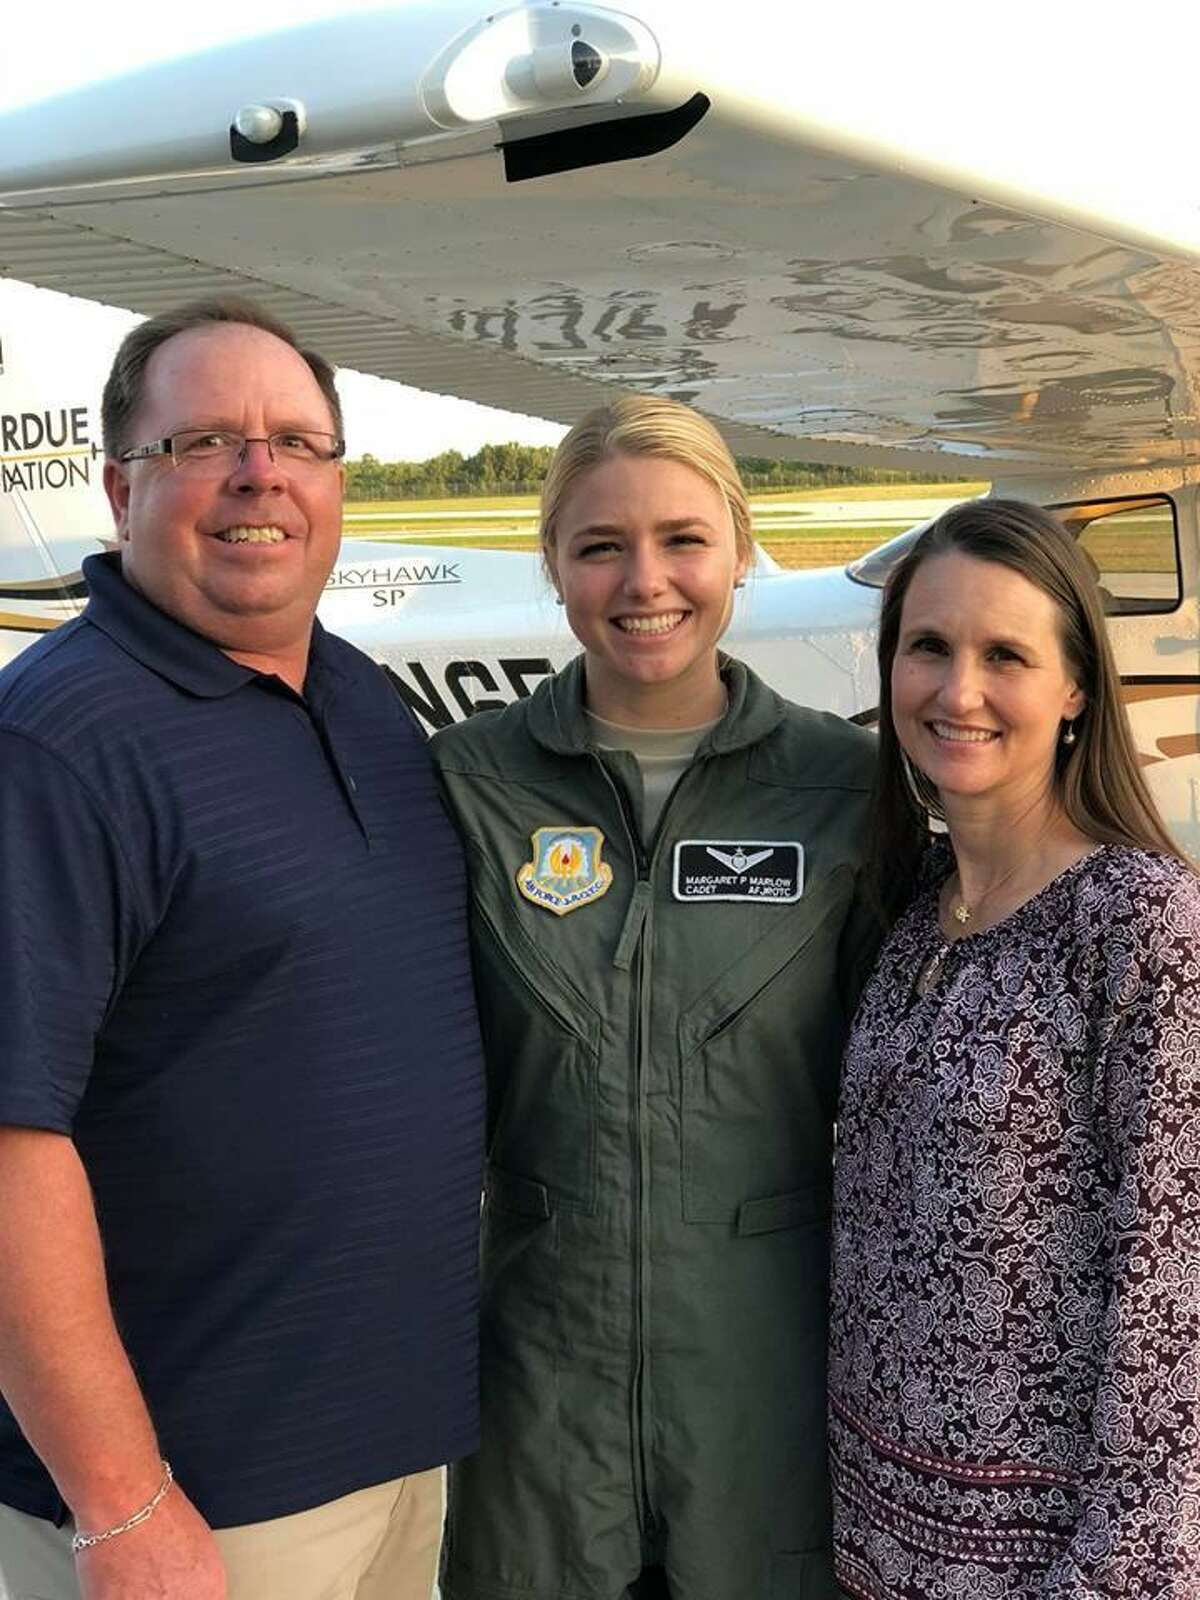 The Woodlands High School Air Force Cadet Maggie Marlow stands with her parents, Garth and Kristine Marlow, after earning her Private Pilot License at Purdue University.